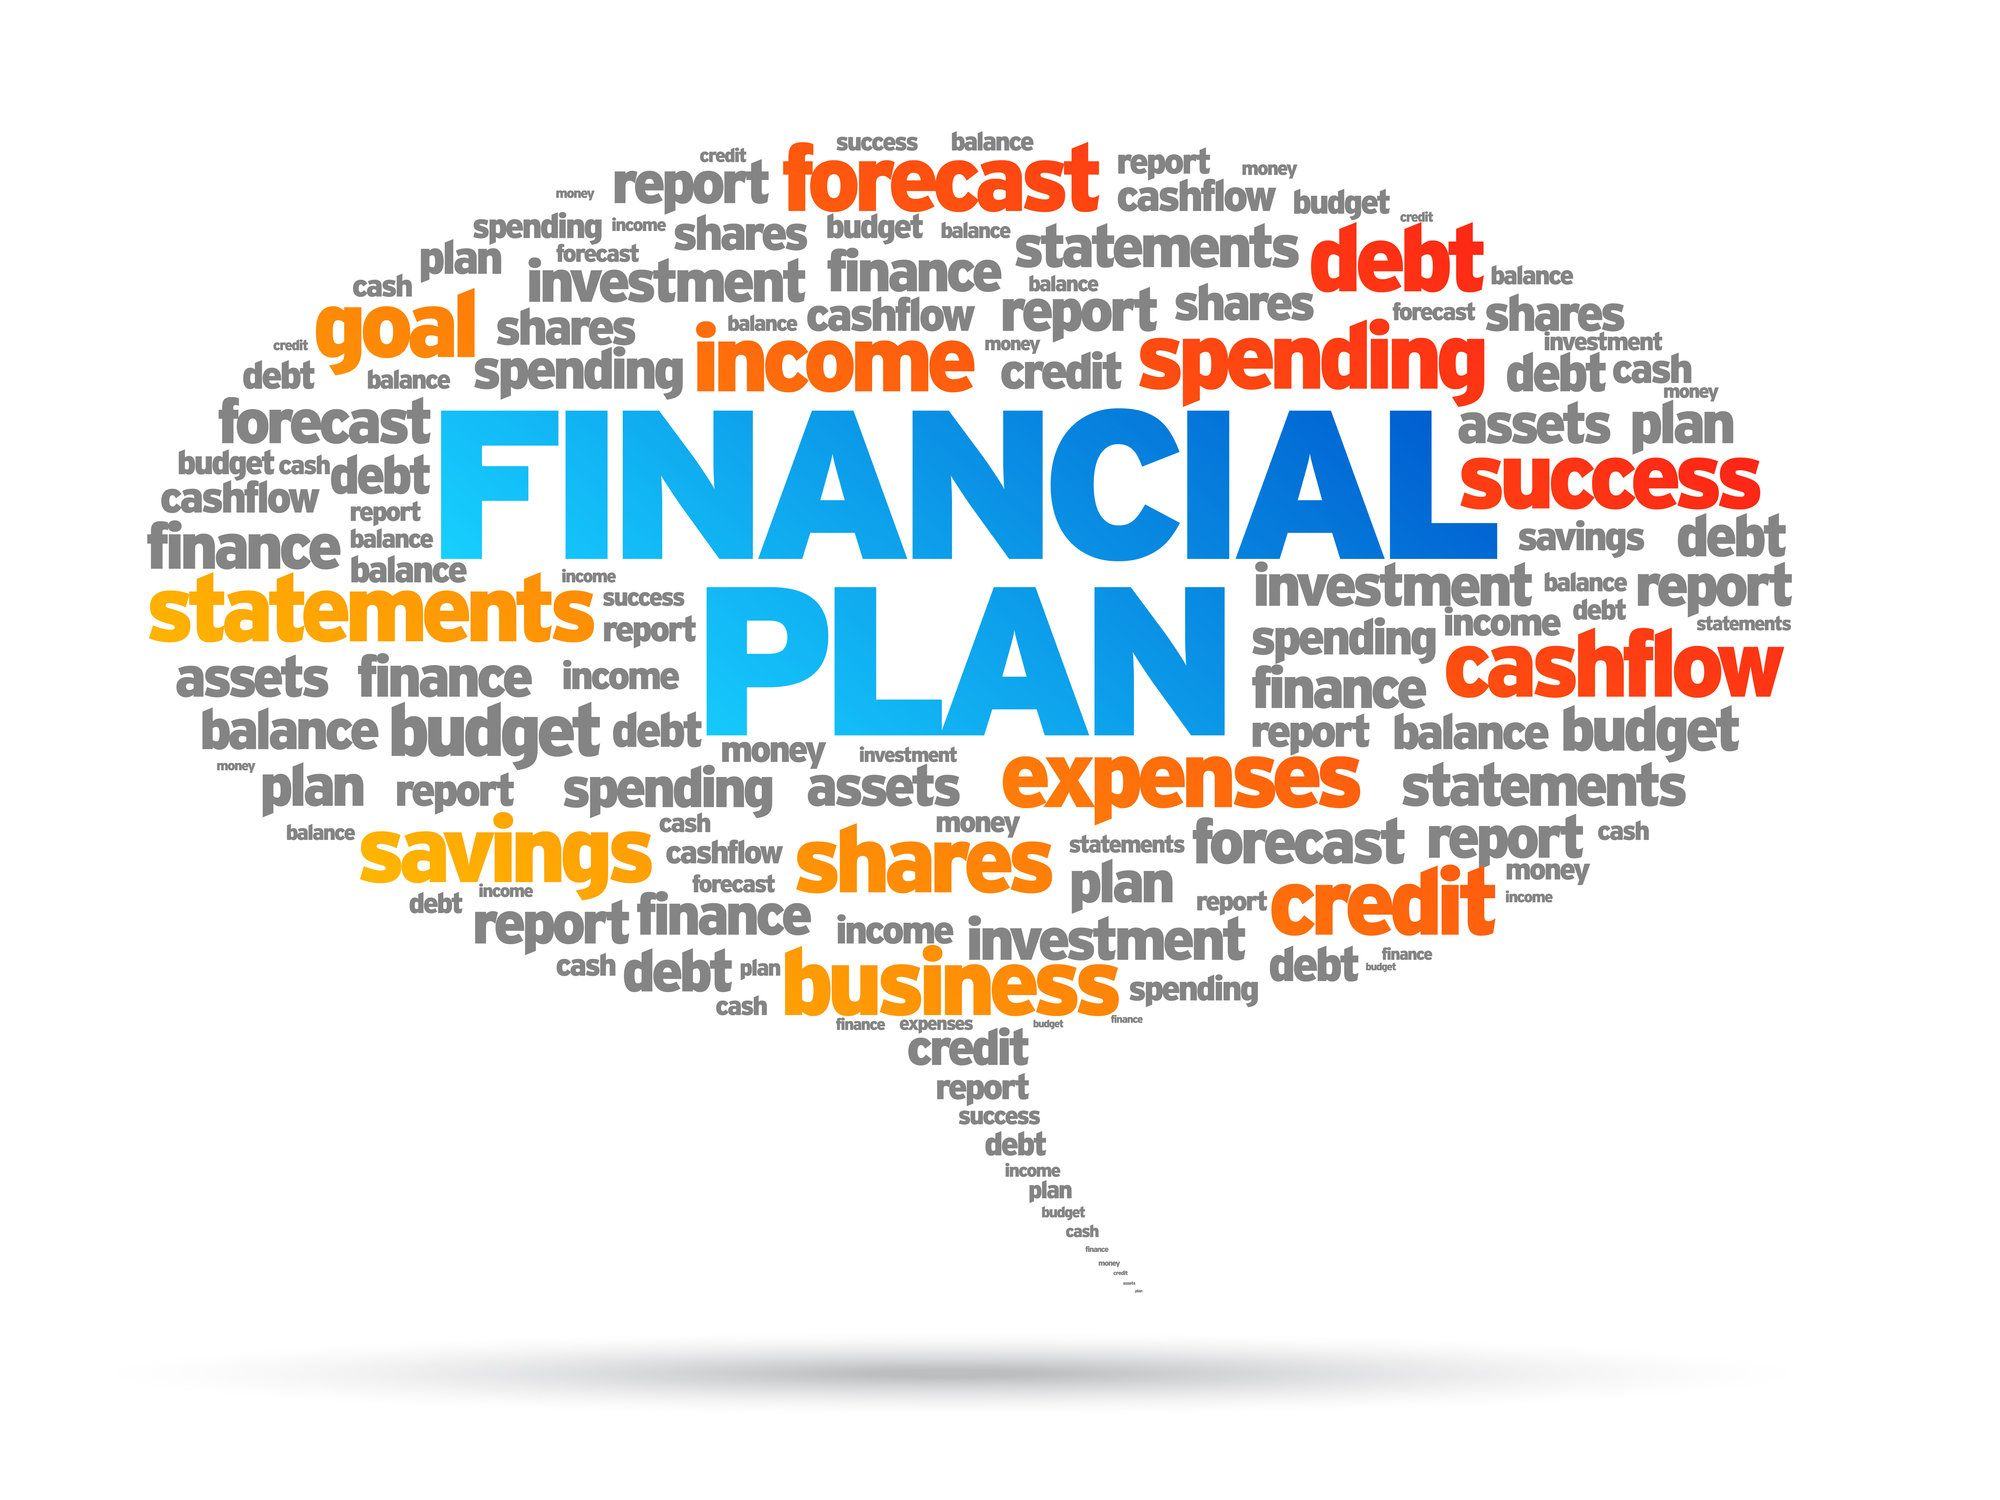 Financial Advisor Business Plan Benefits